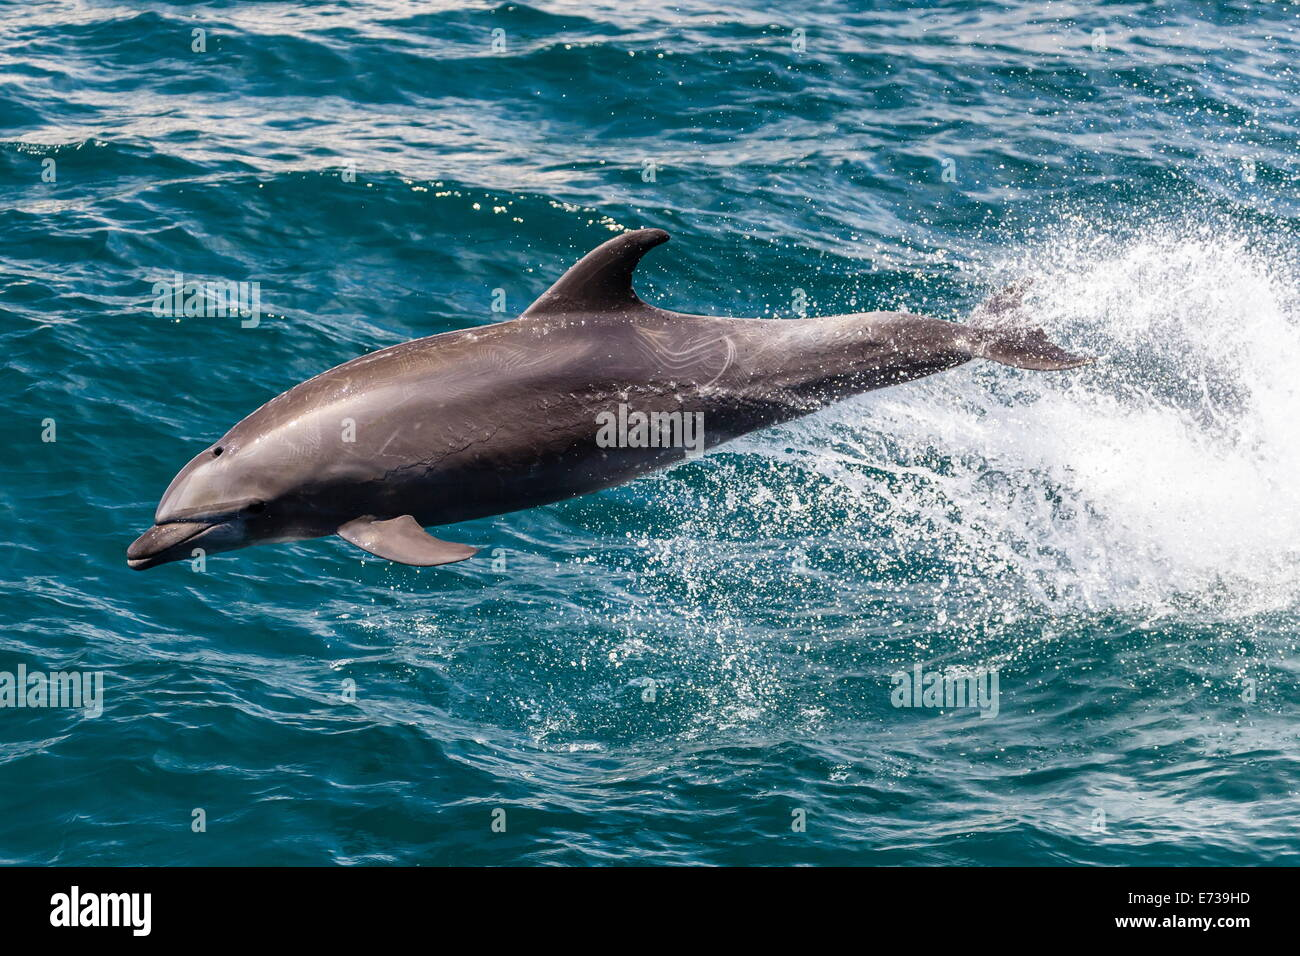 Adult bottlenose dolphin (Tursiops truncatus) leaping in the waters near Isla San Pedro Martir, Baja California - Stock Image